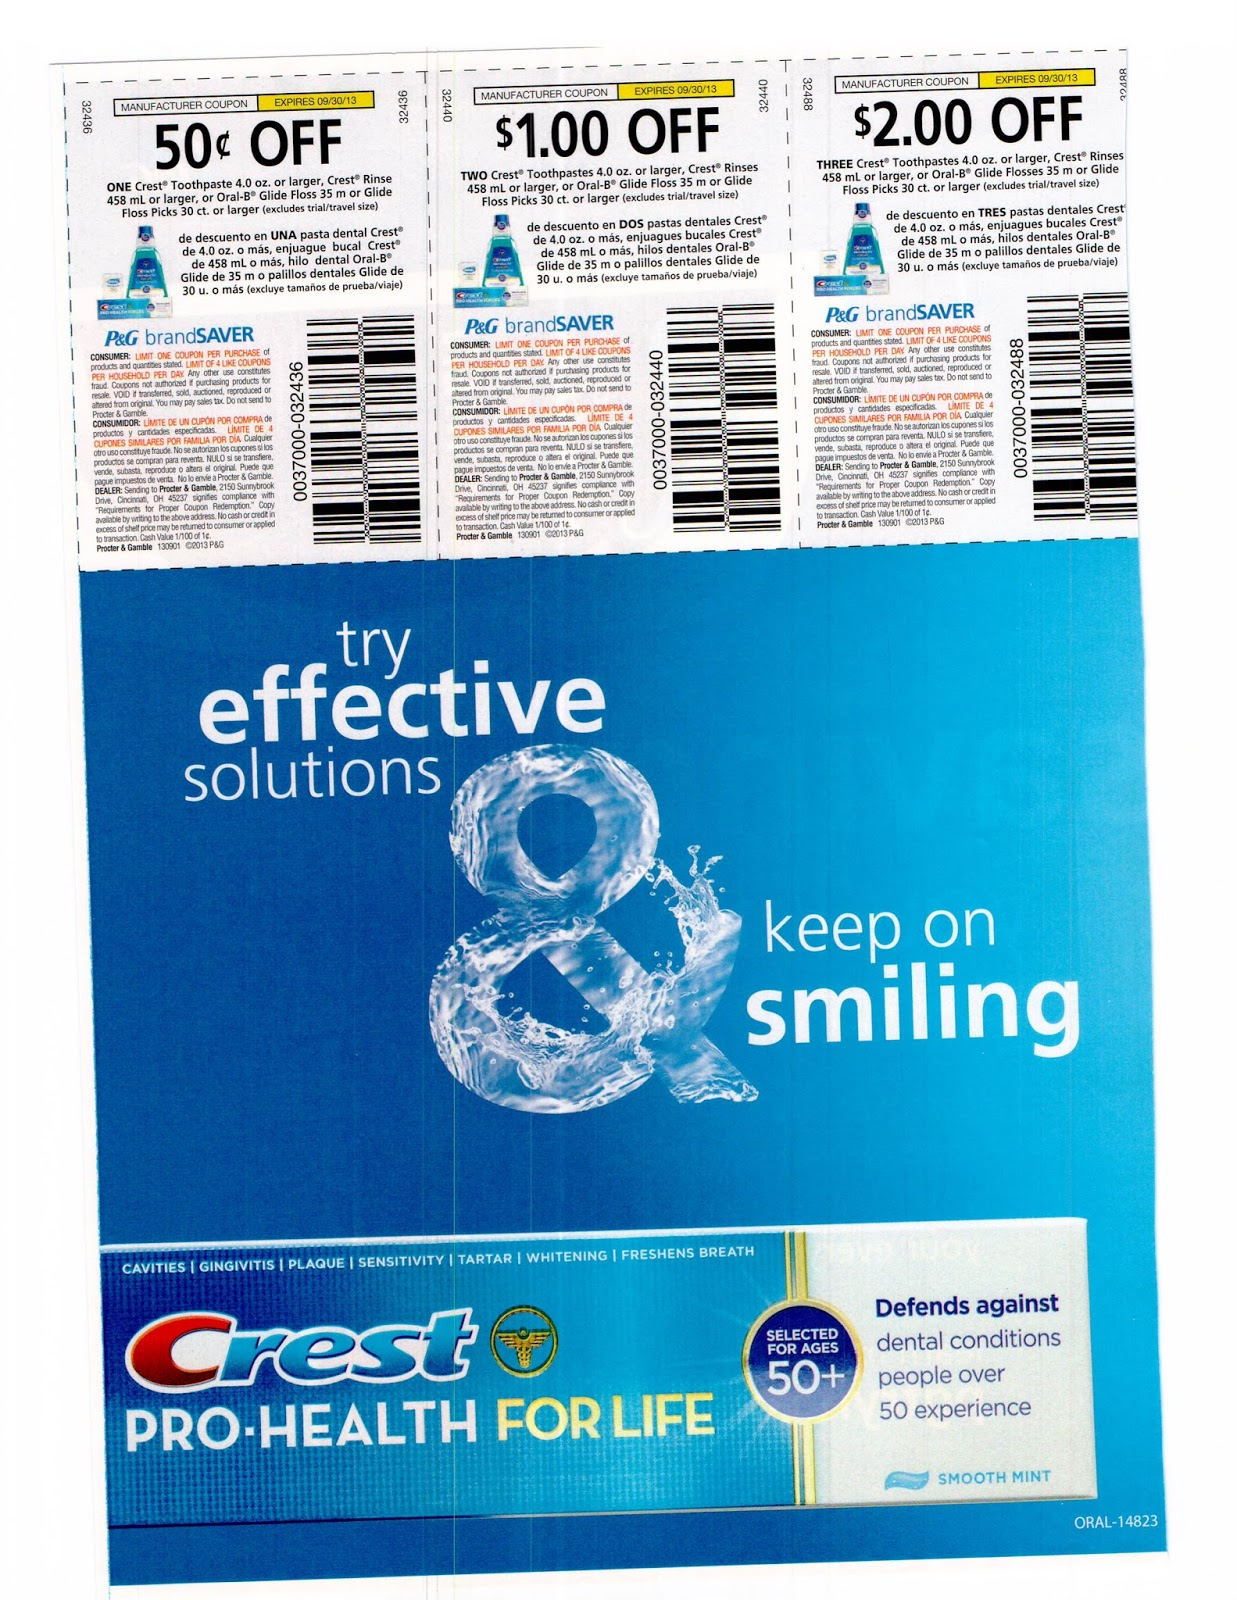 ... Coupon Inserts: SOLD OUT 9/1 Proctor and Gamble Whole Coupon Inserts